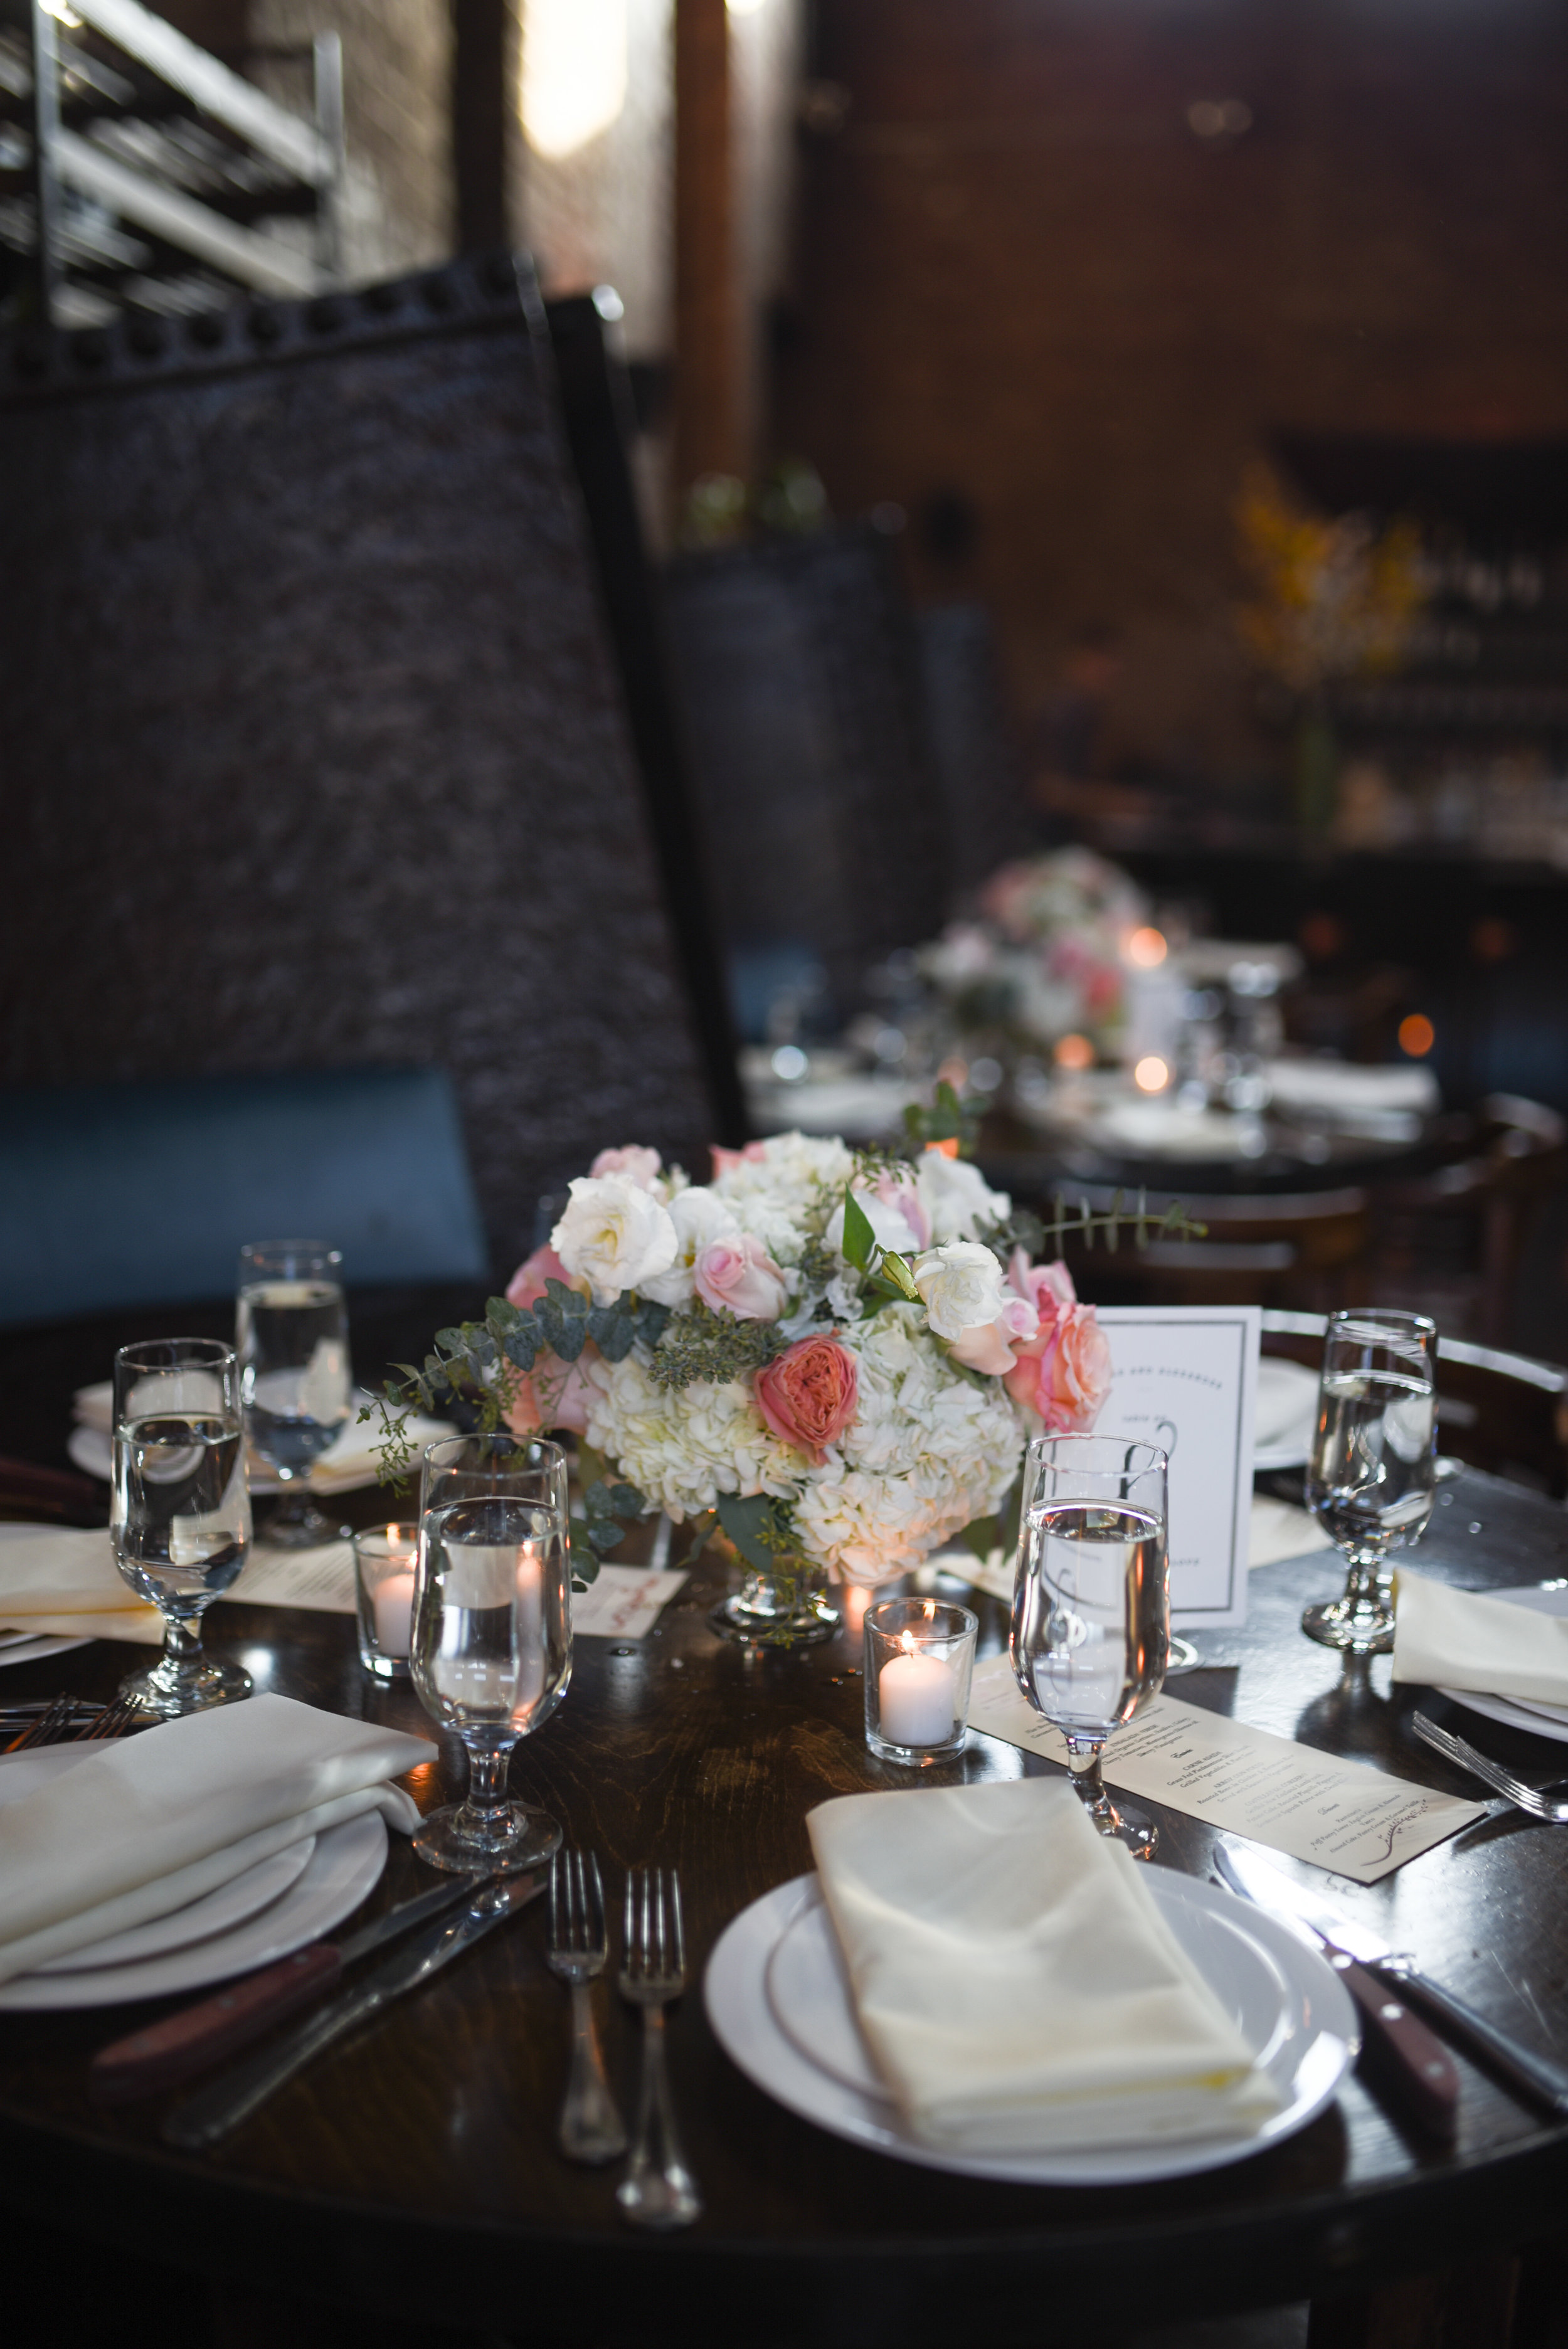 The booths at MyMoon look lovely with this soft pink chalice style centerpiece